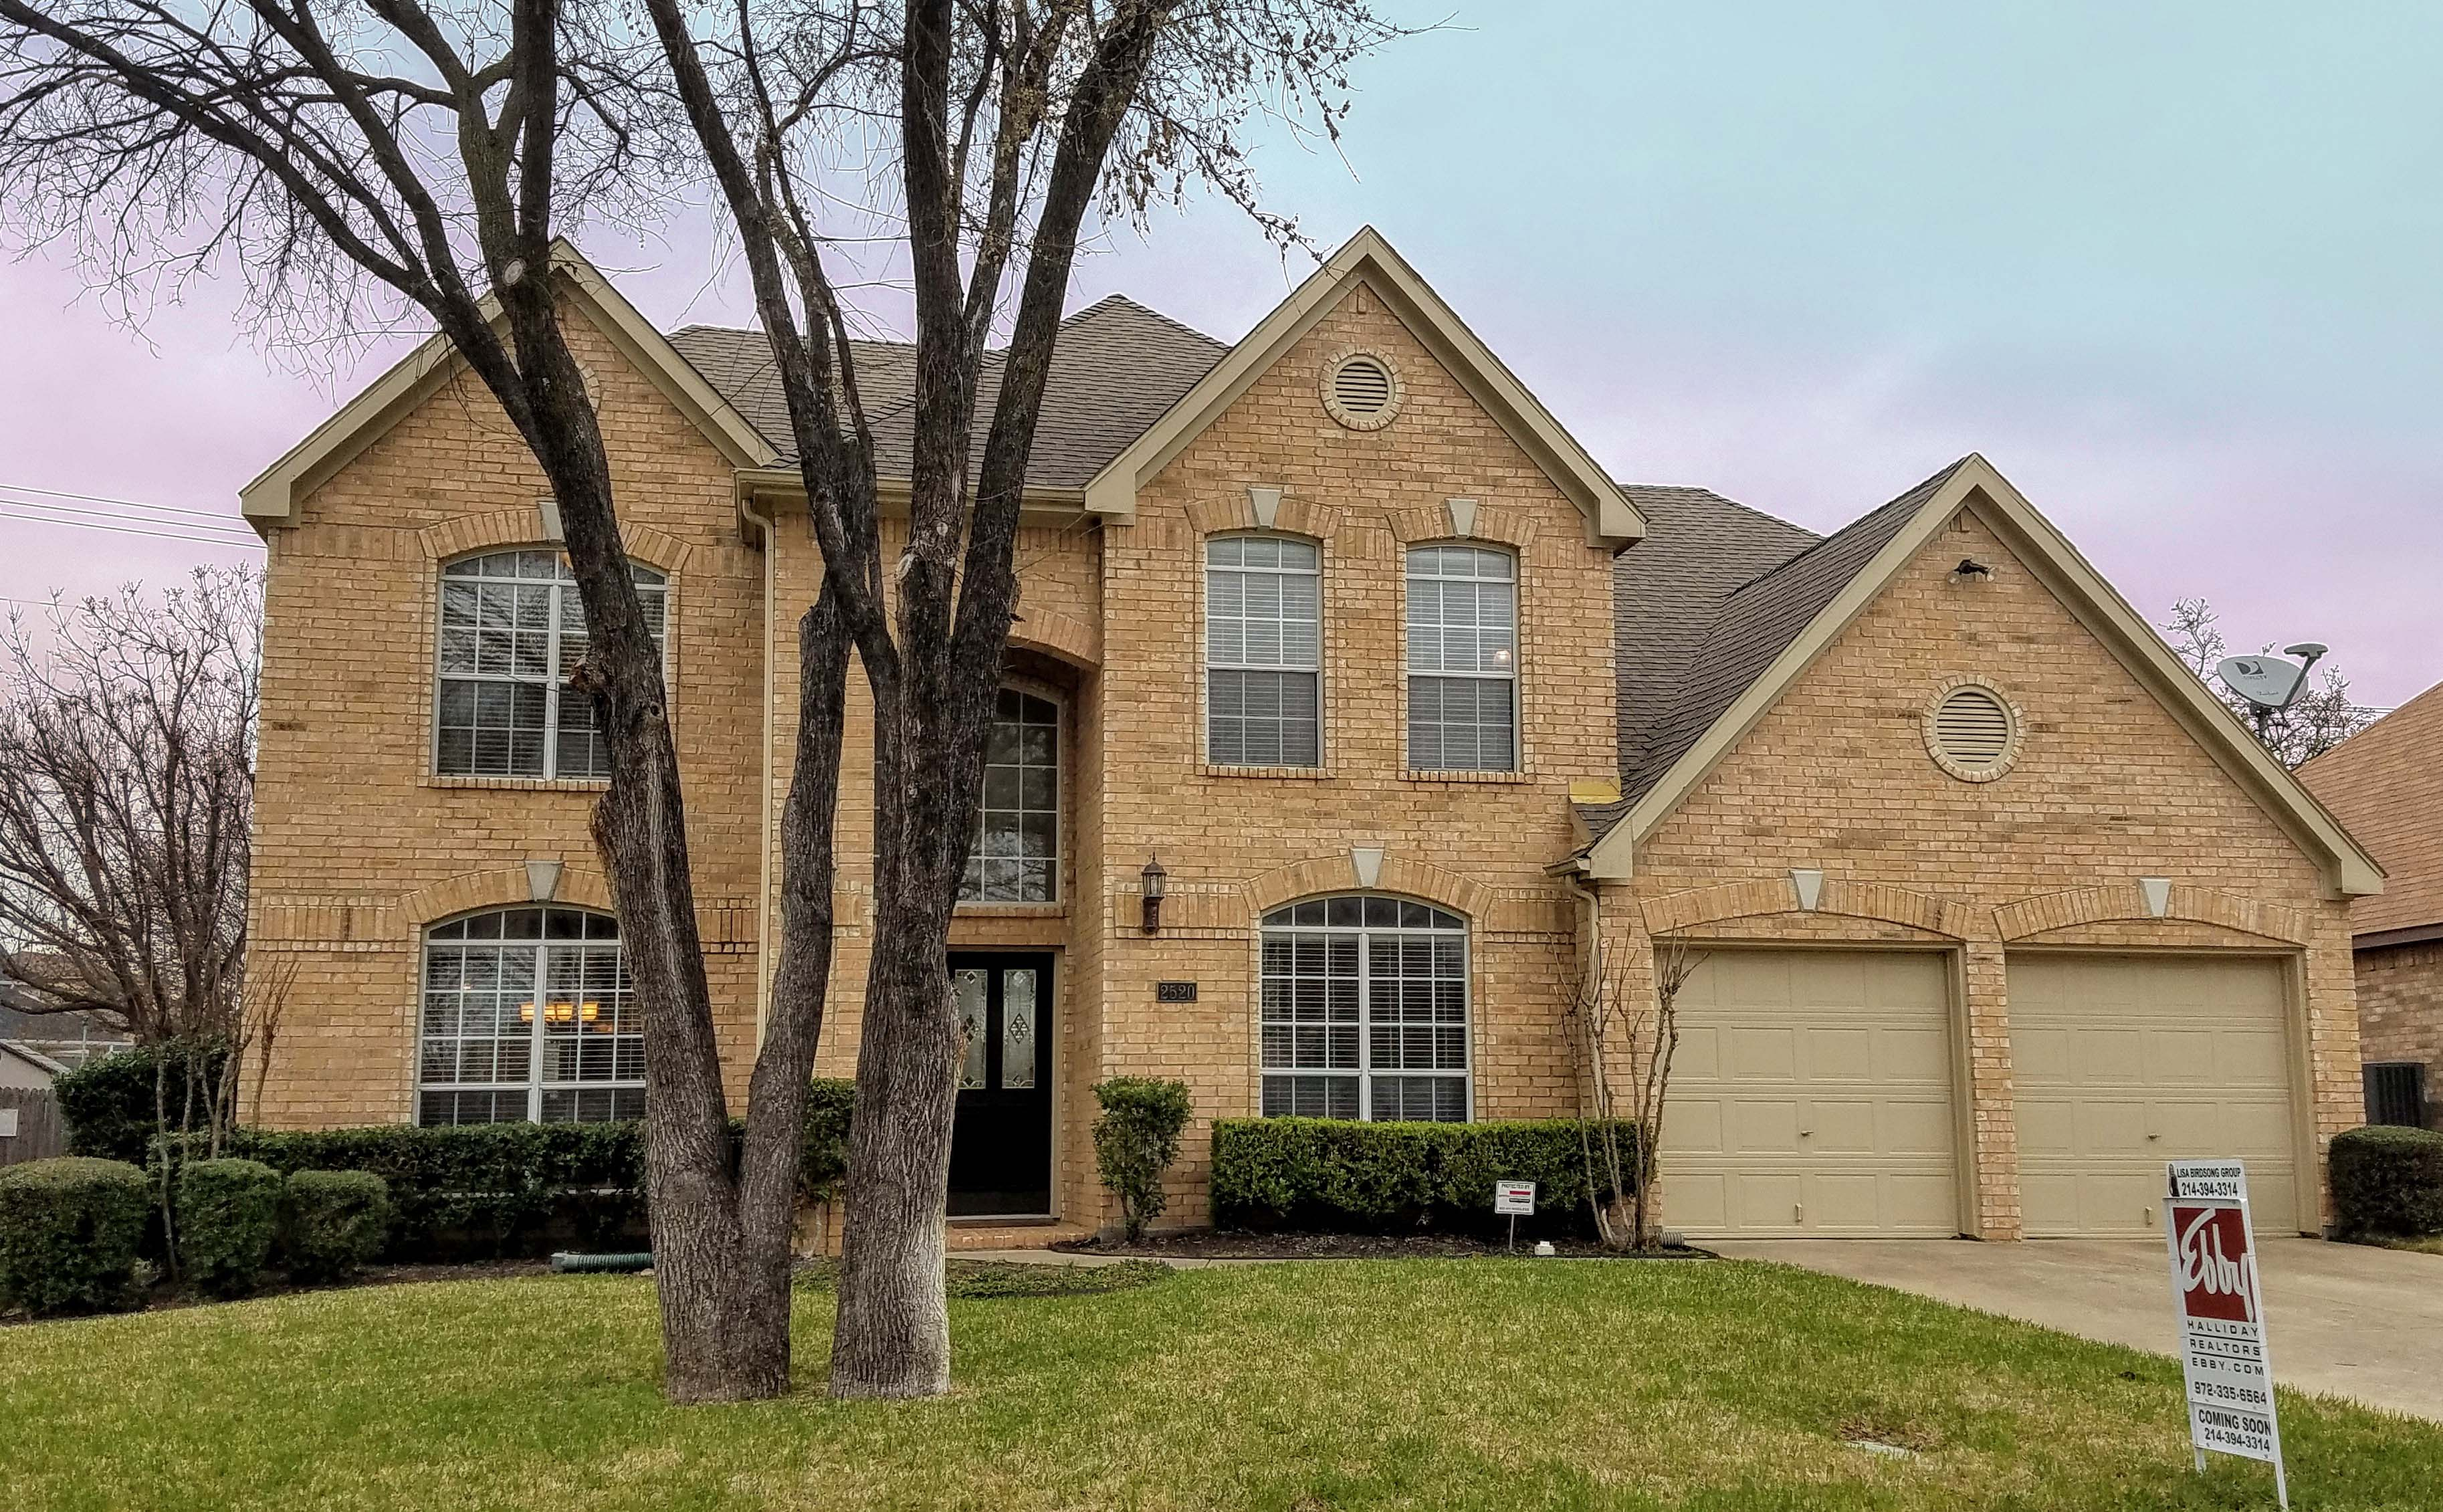 2520 Waltham Dr, <a href='http://www.birdsongrealty.com/index.php?types[]=1&types[]=2&areas[]=city:Grapevine&beds=0&baths=0&min=0&max=100000000&map=0&quick=1&submit=Search' title='Search Properties in Grapevine'>Grapevine</a> - Lisa Birdsong